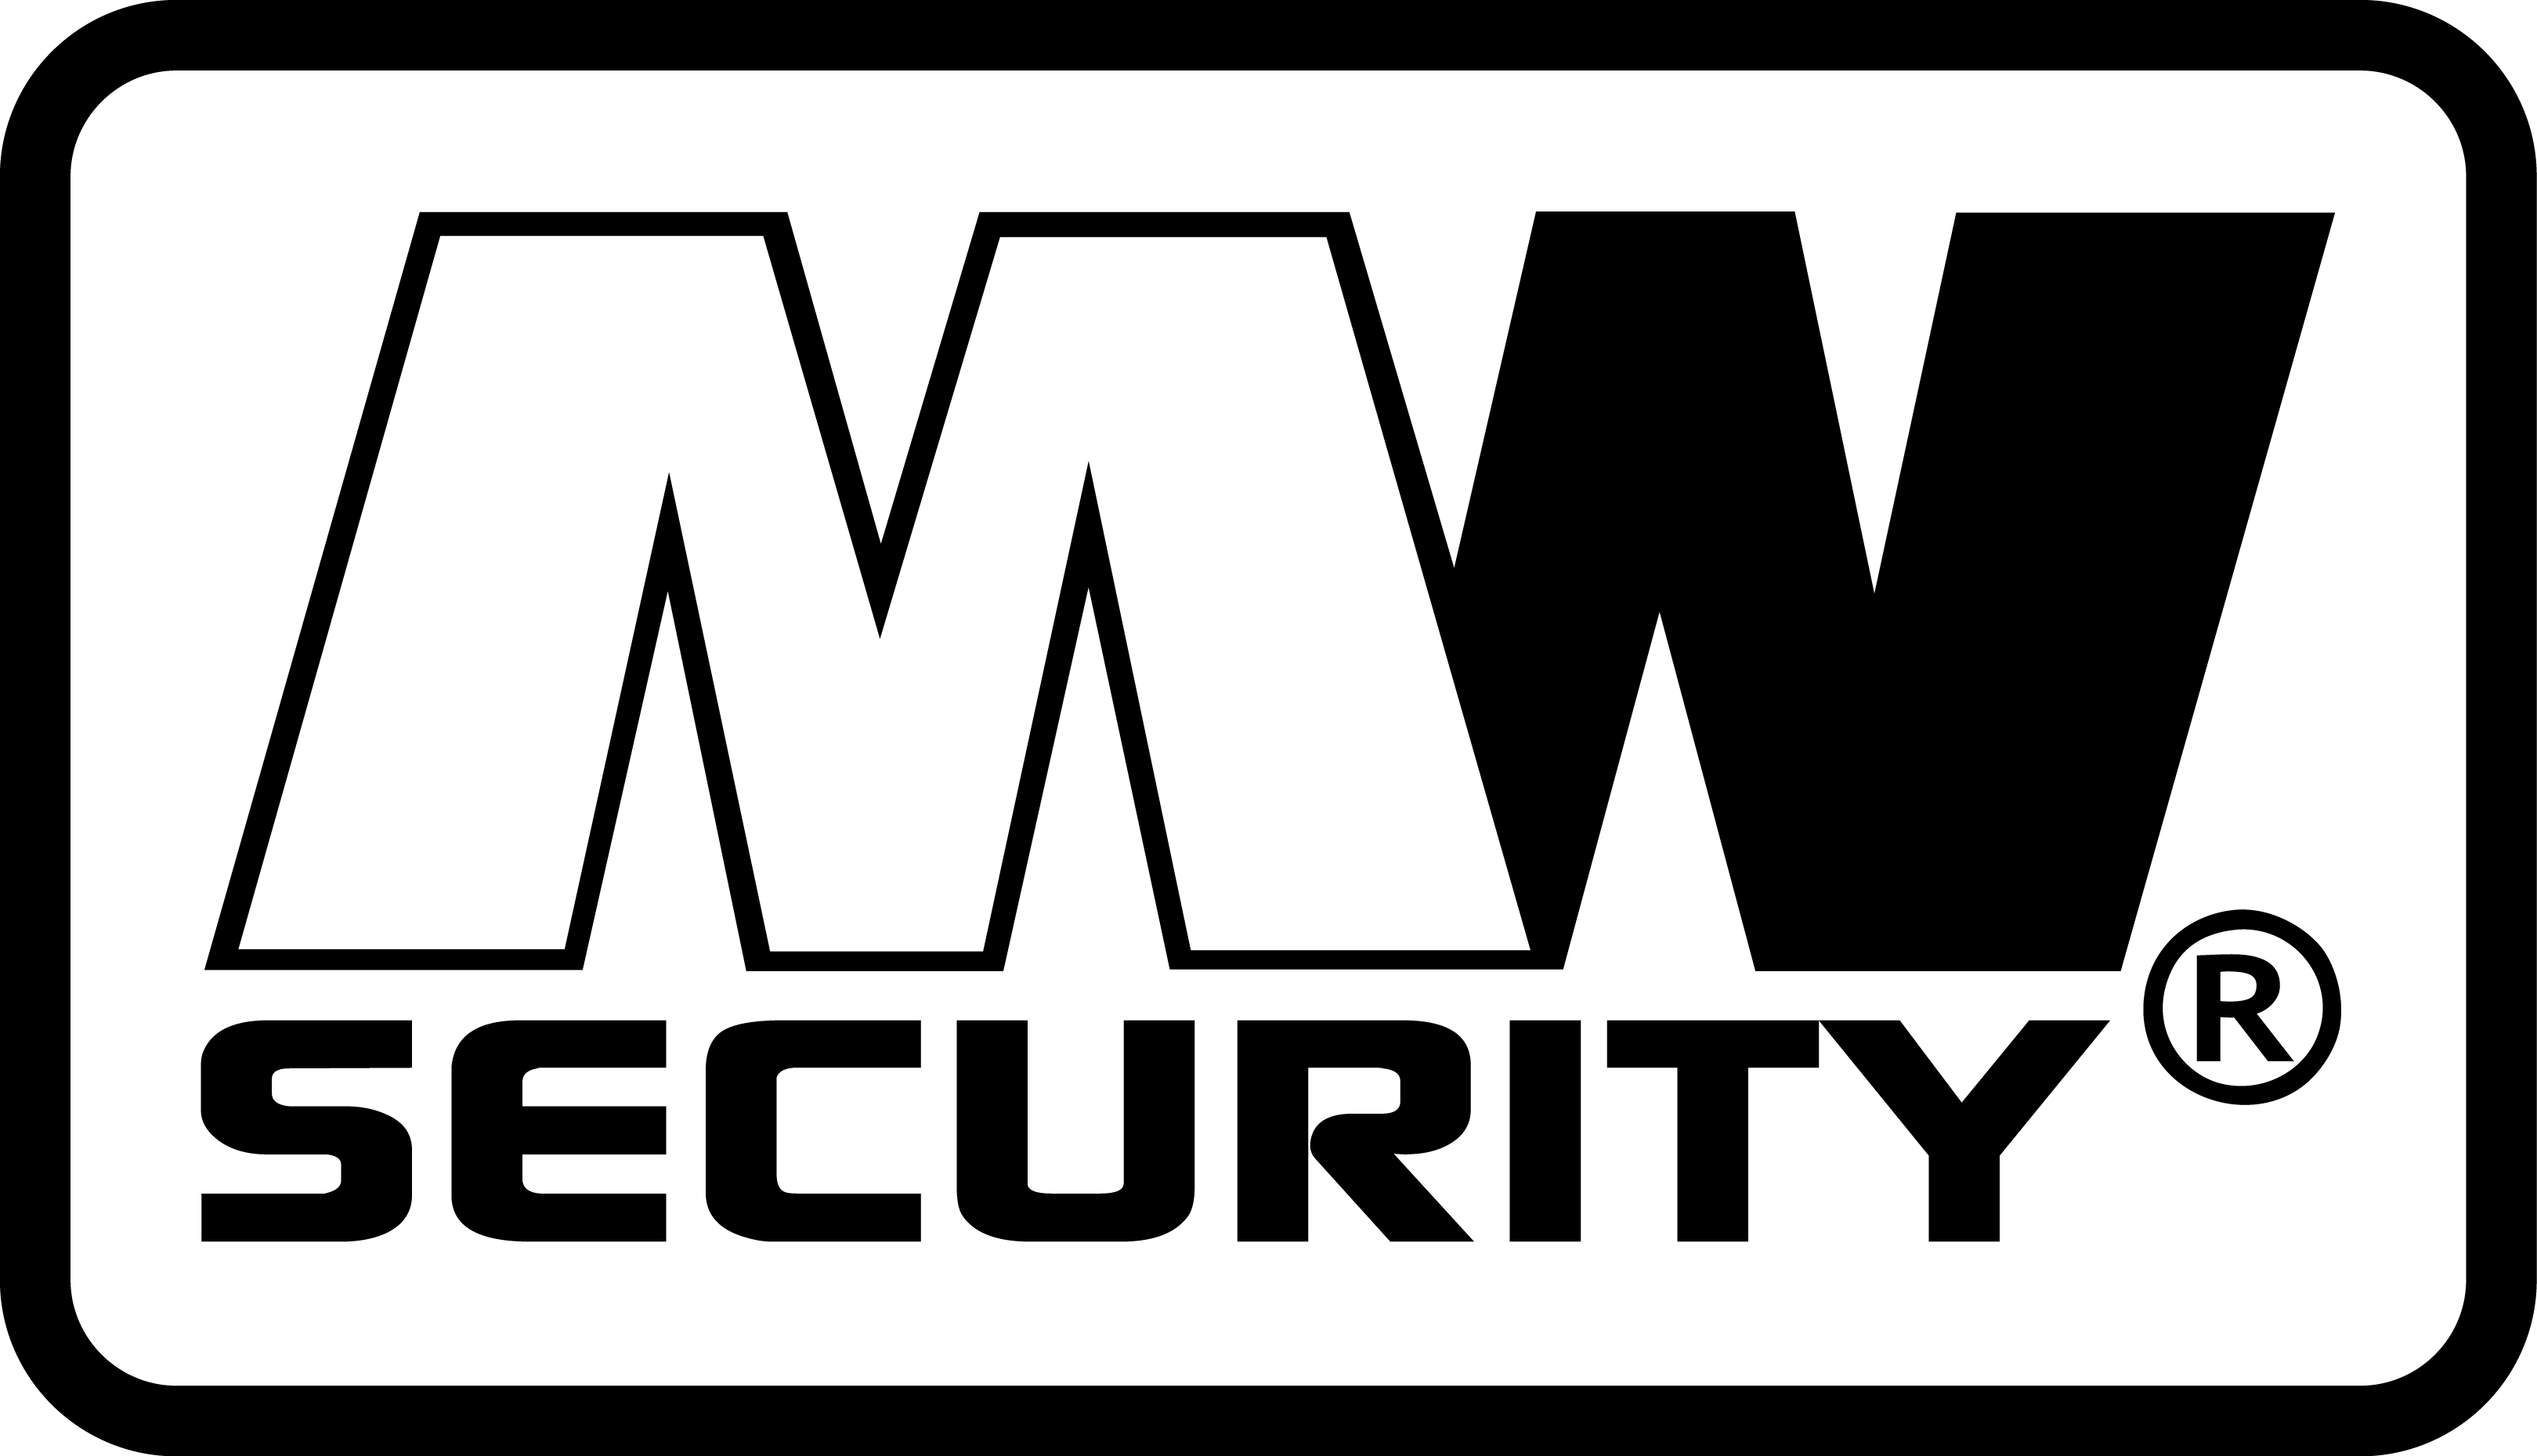 MW_Security.png